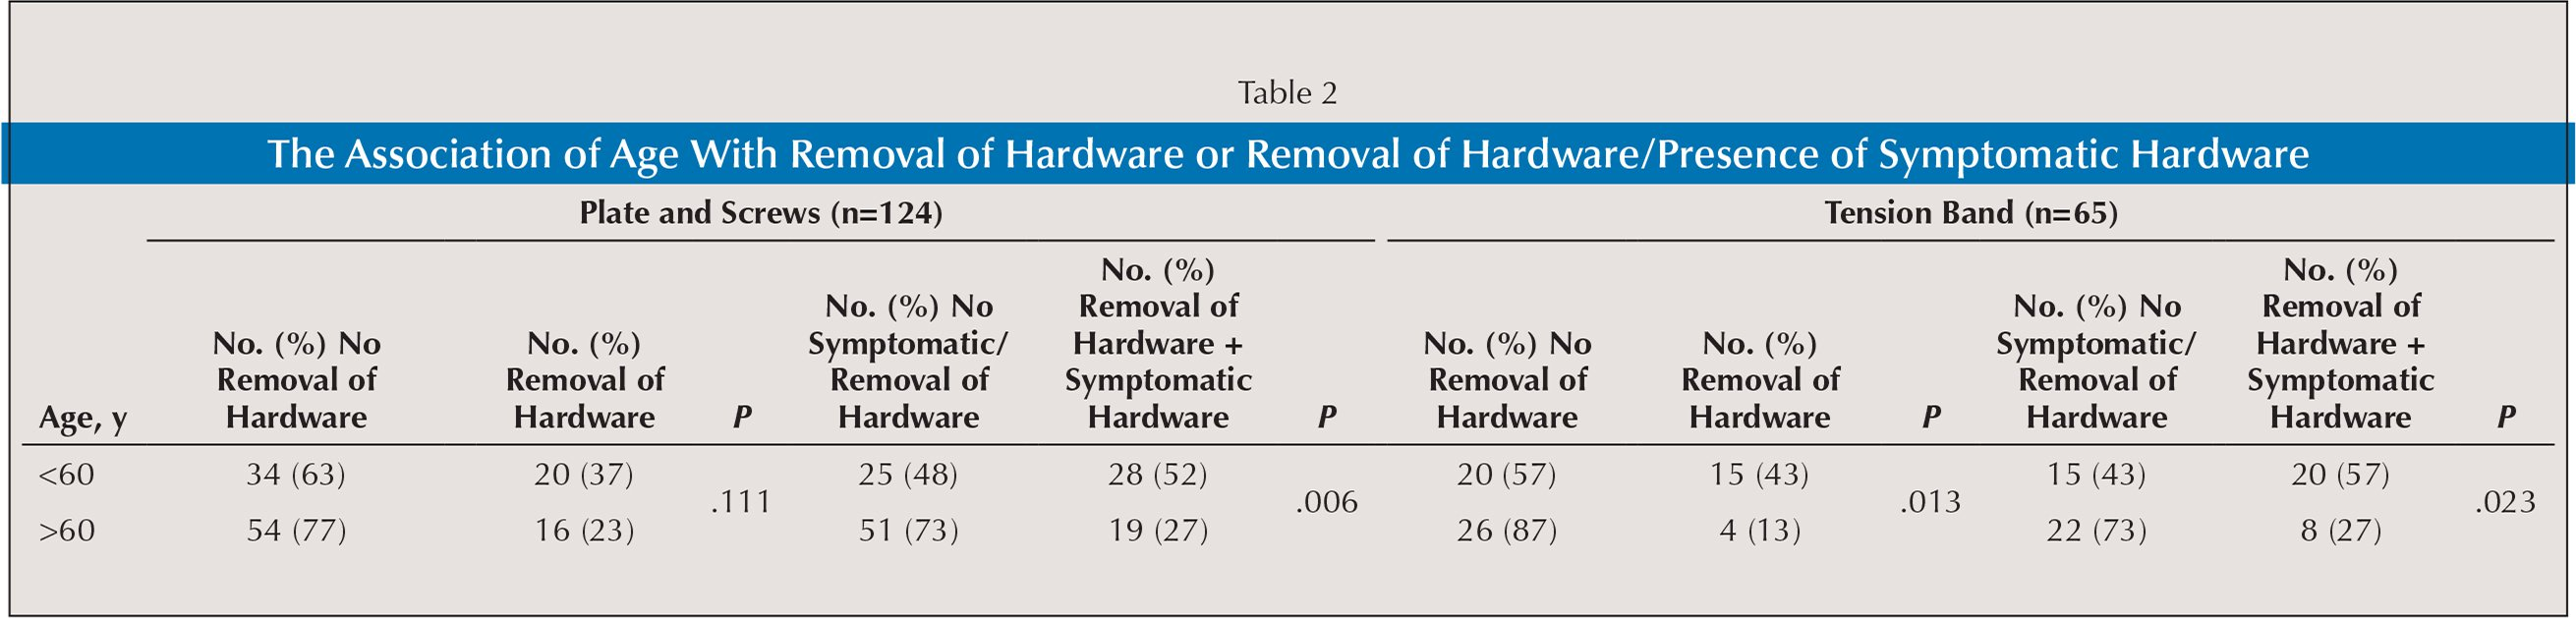 The Association of Age With Removal of Hardware or Removal of Hardware/Presence of Symptomatic Hardware